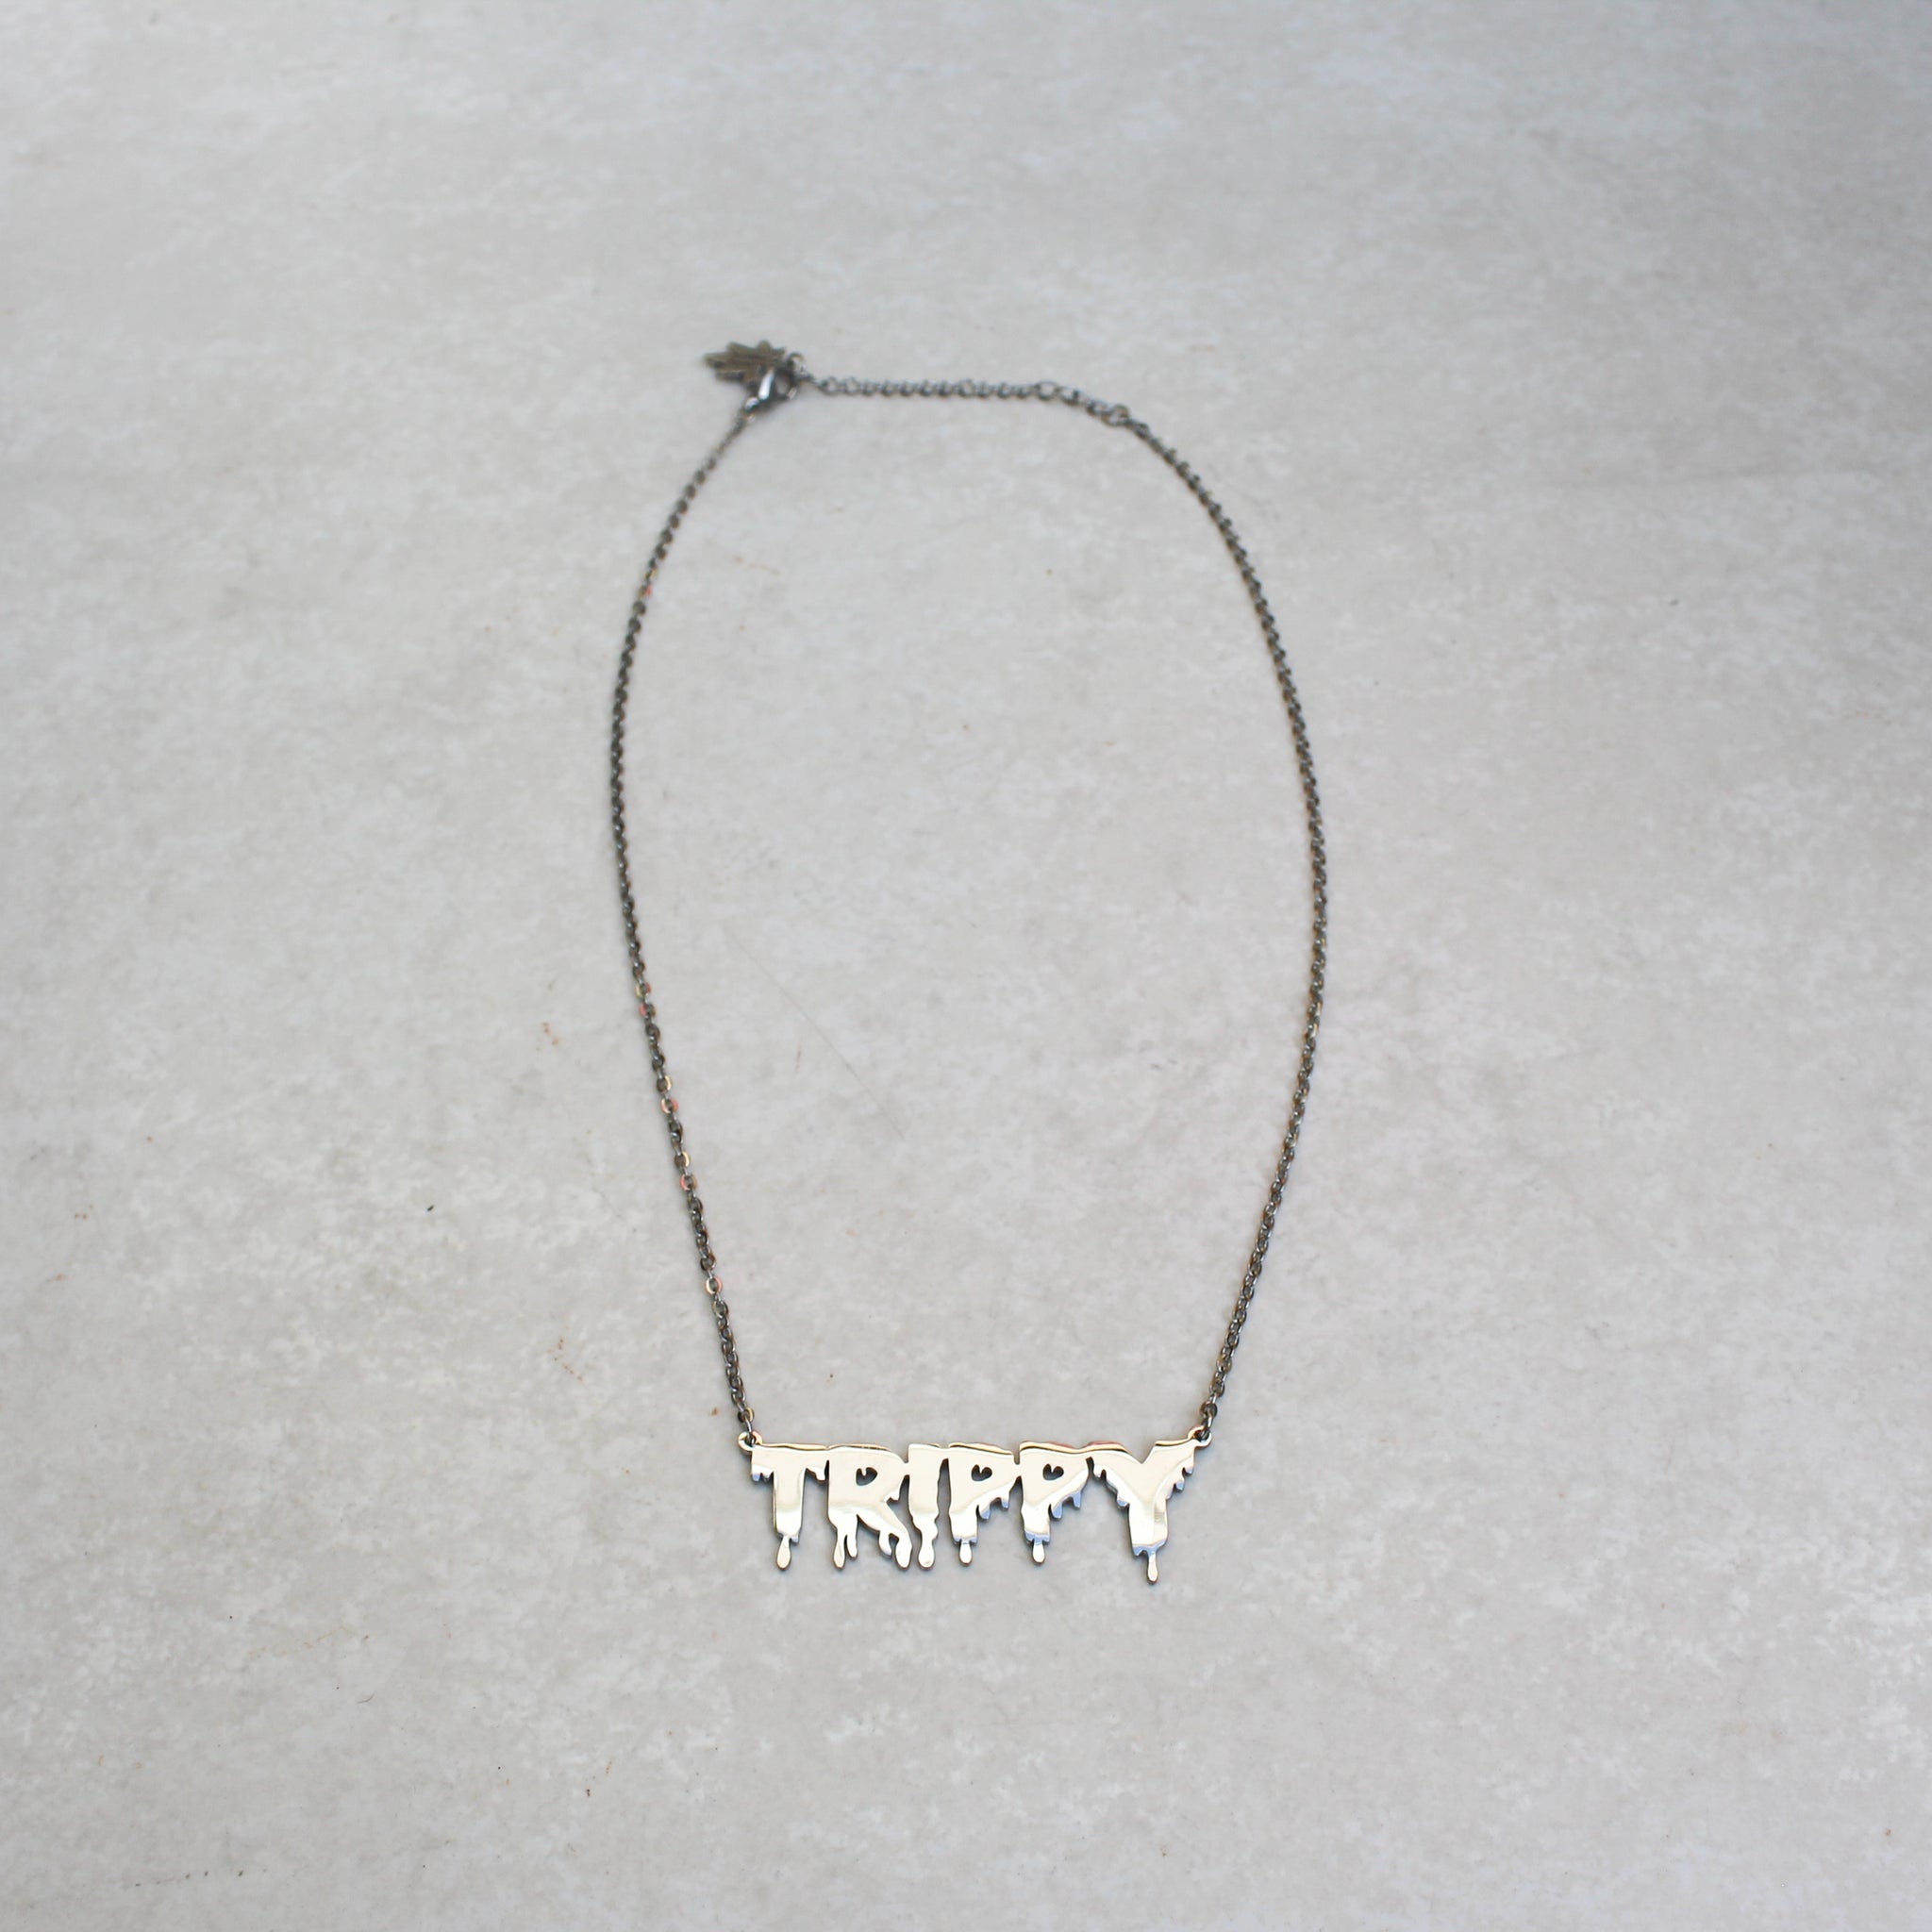 Trippy Treez x Blunted Objects Statement Necklace - Silver - Blunted Objects